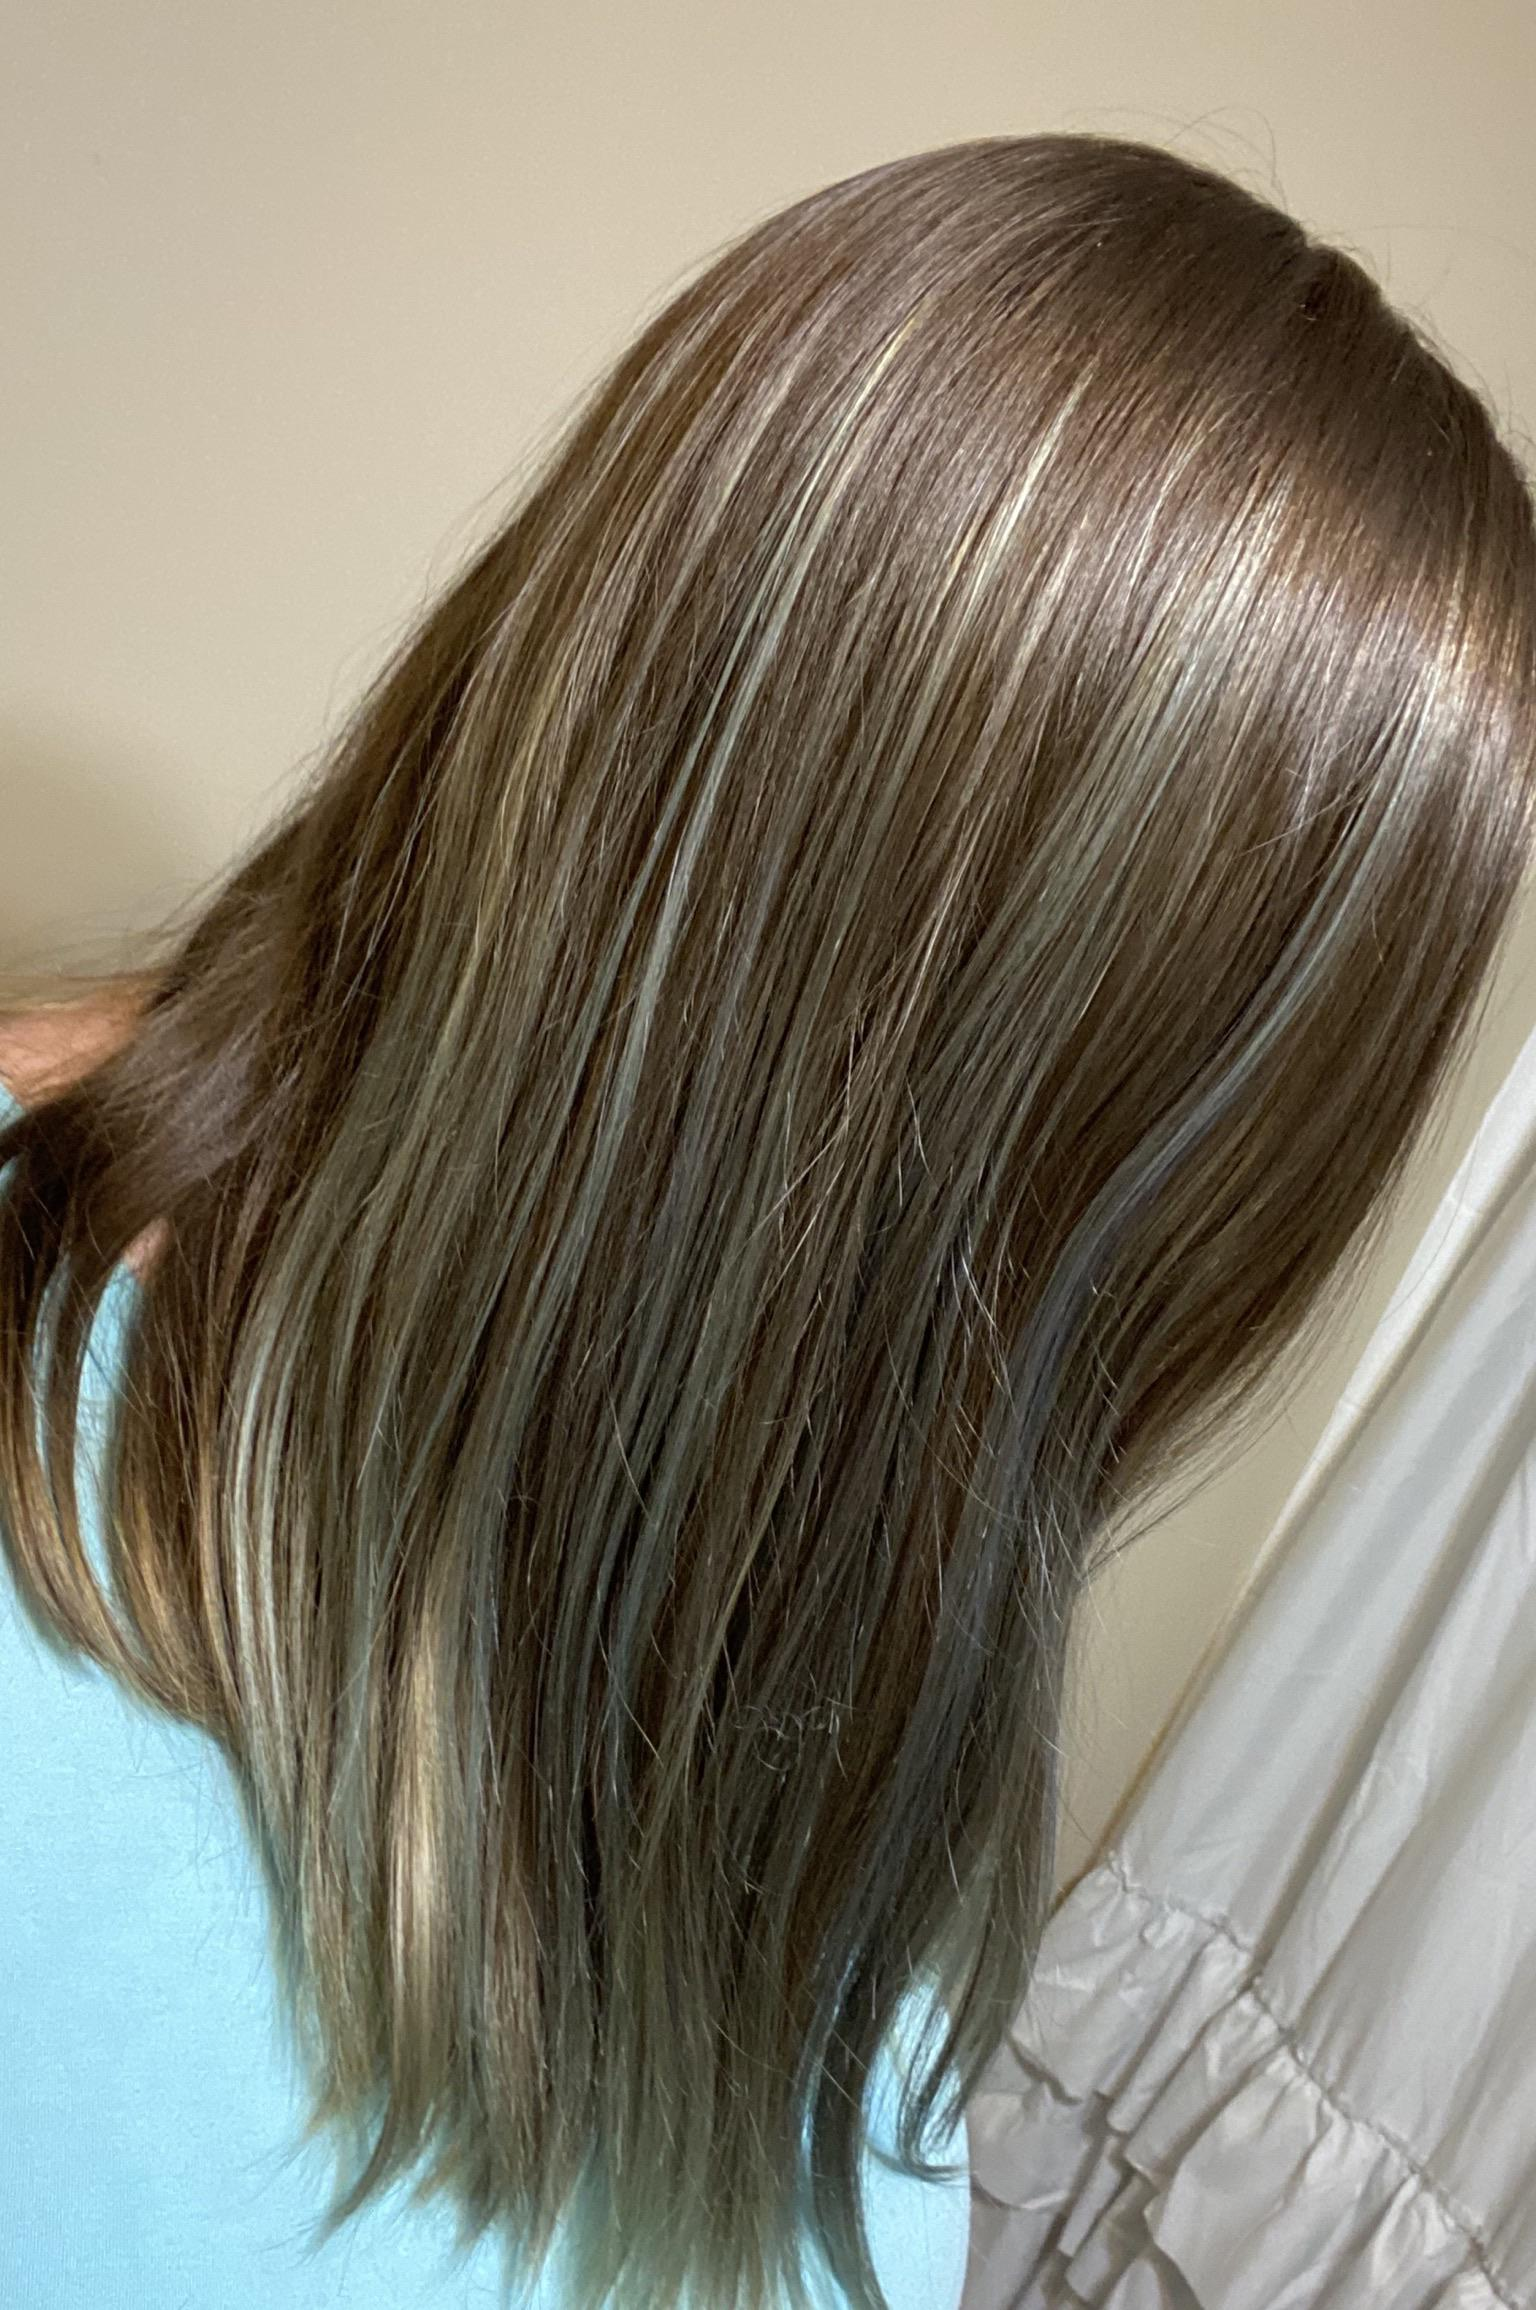 Tips On How To Remove Green Blue Tint From Washed Out Overtone Dye I Ve Tried Red Shampoo Cleansing Shampoo Malibu Wellness Remedy Vitamin C Vinegar Etc And Nothing Seems To Work I M Going